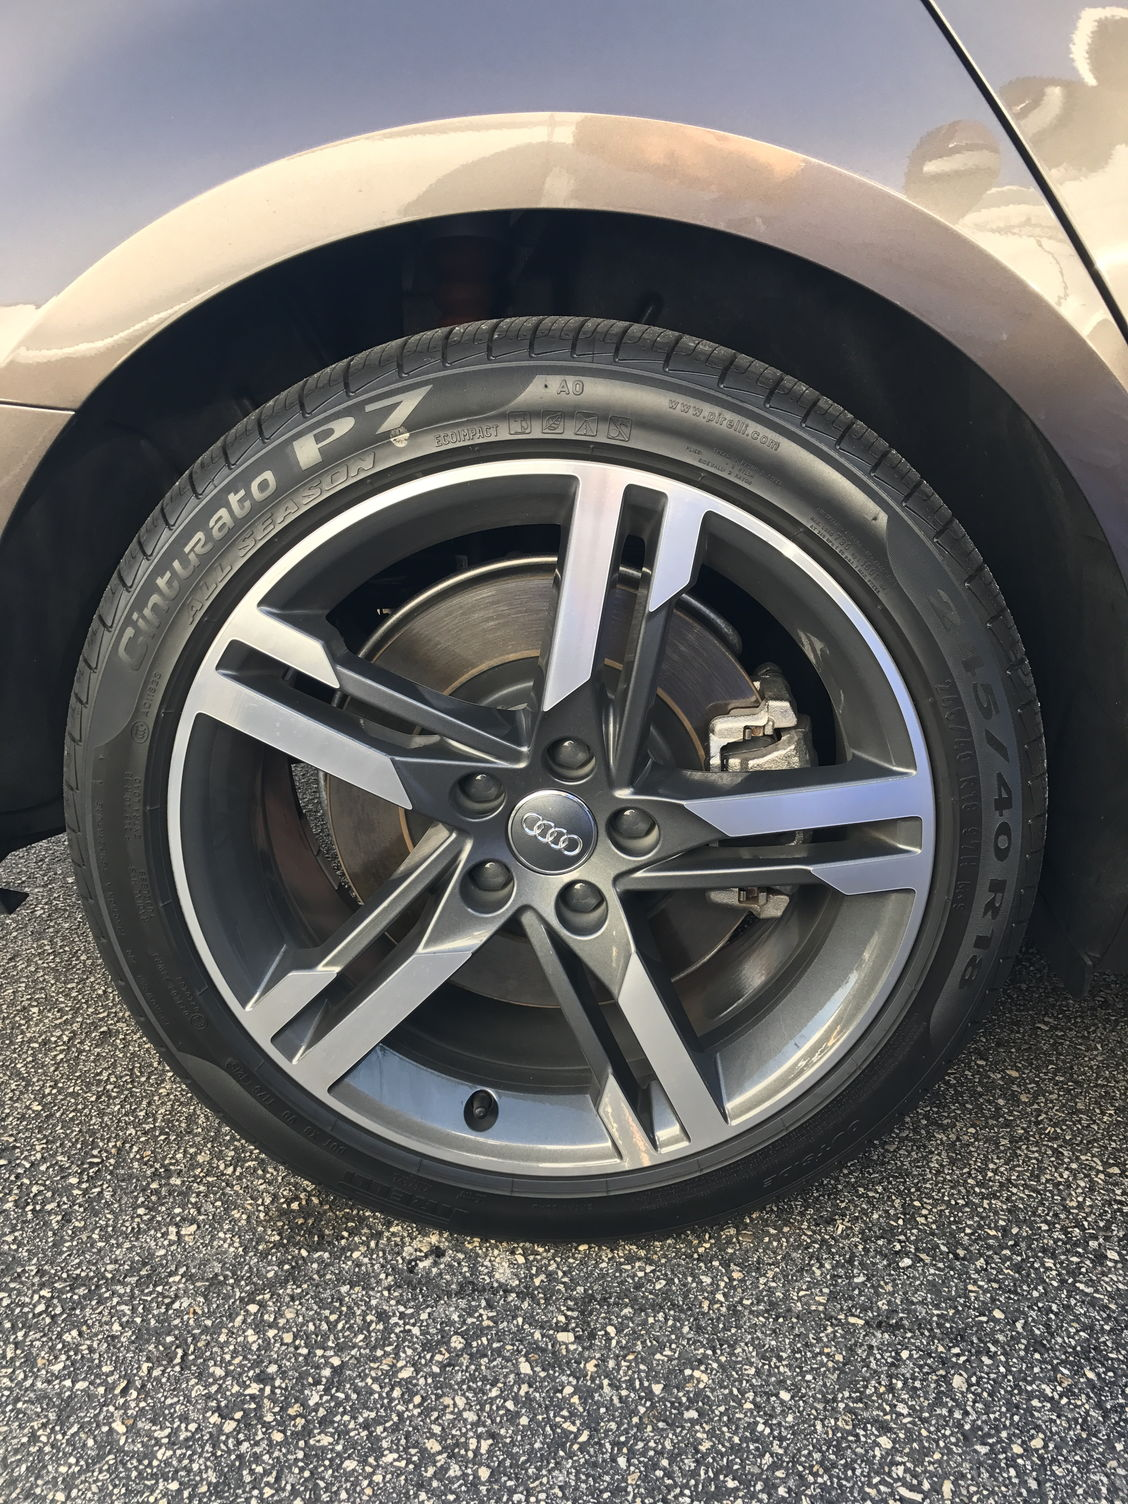 2013 Audi A4 For Sale >> Audi A4 2017 Audi A4 B9 18 inch OEM Wheels and Tires - AudiWorld Forums